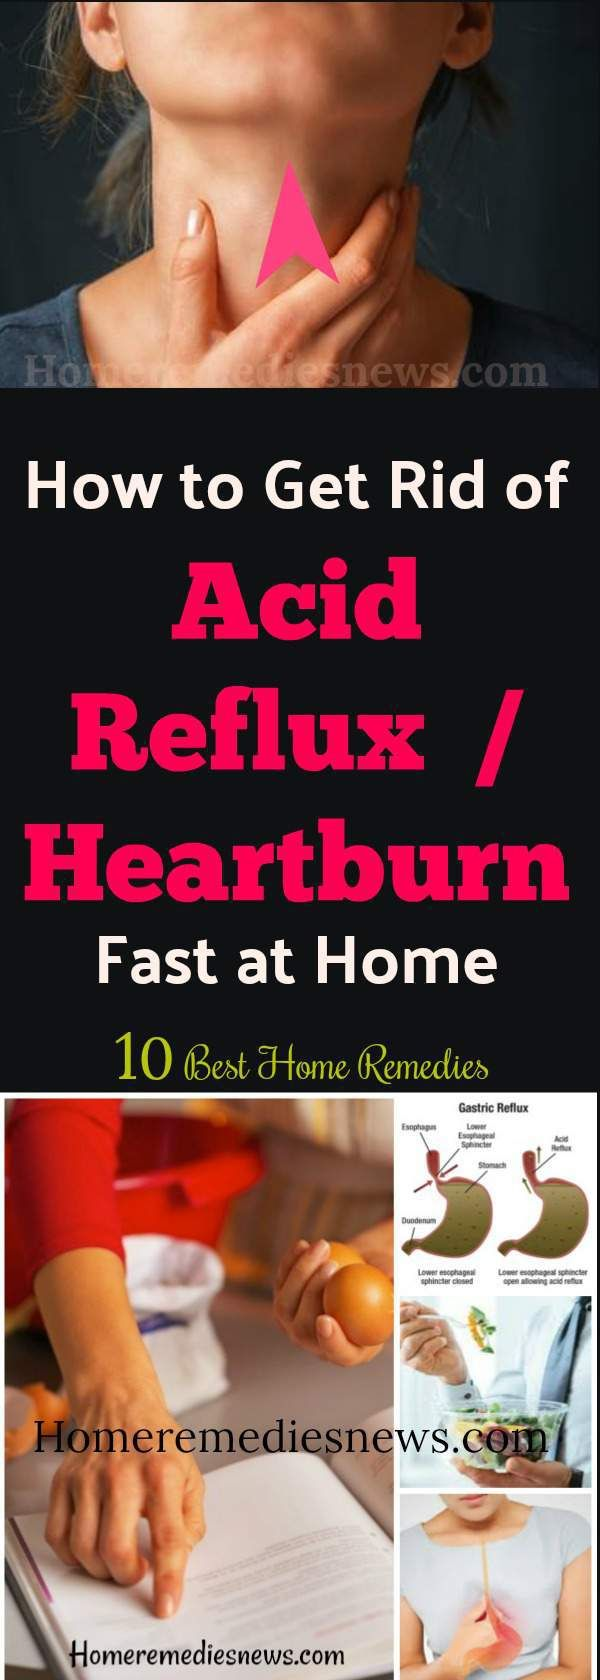 How to get rid of acid reflux naturally at Home – What is Acid Reflux / Heartburn? Acid Reflux is also known as gastroesophageal reflux disease (GERD).In this condition, the acid in the belly moves into the esophagus. This occurs when the valve that partitioned the stomach from the esophagus is malfunctioning. And one begins to feel burning sensation in the throat and chest.